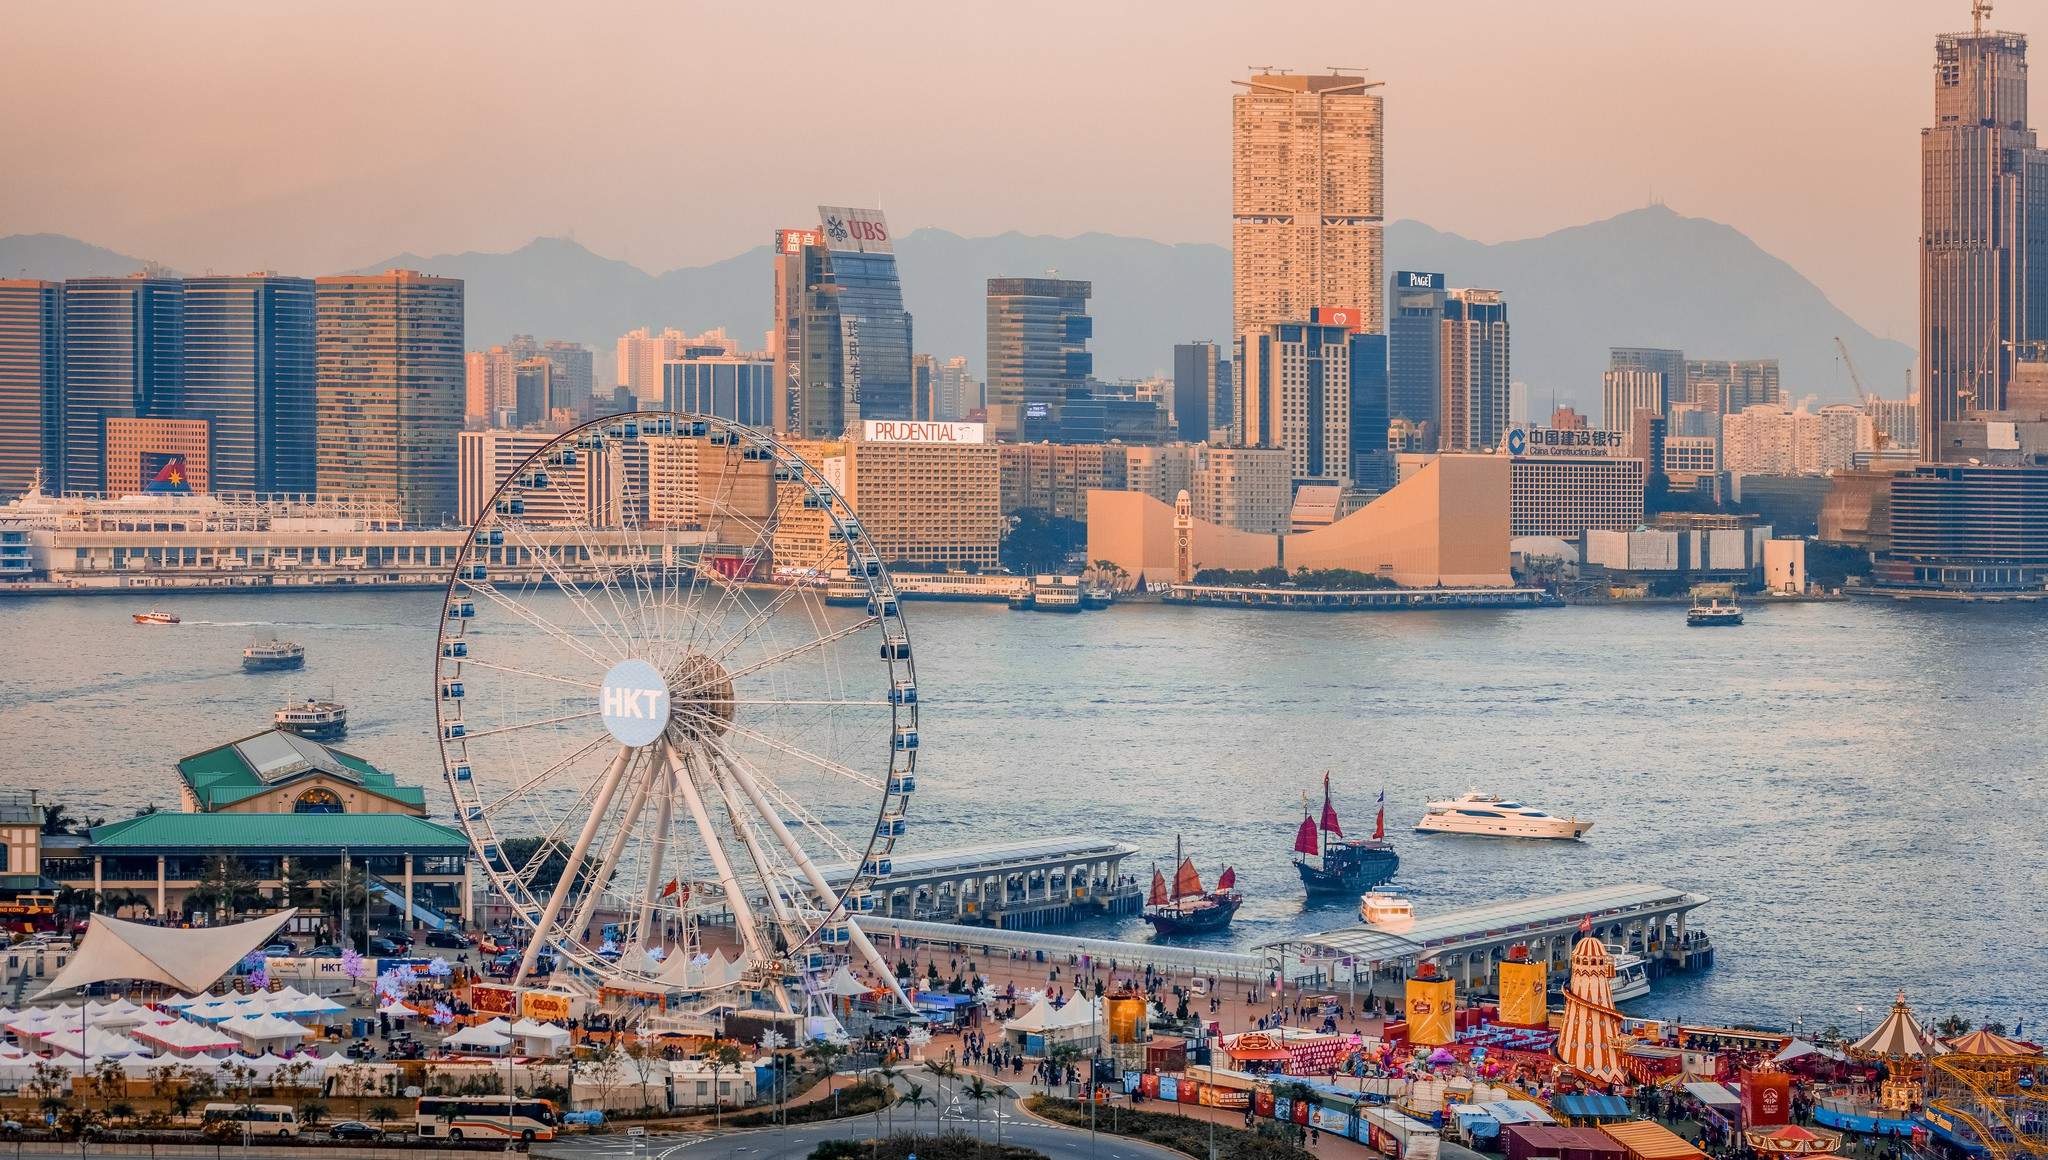 "<a href=""https://www.flickr.com/photos/mark_lehmkuhler/31646698953/"">Hong Kong 